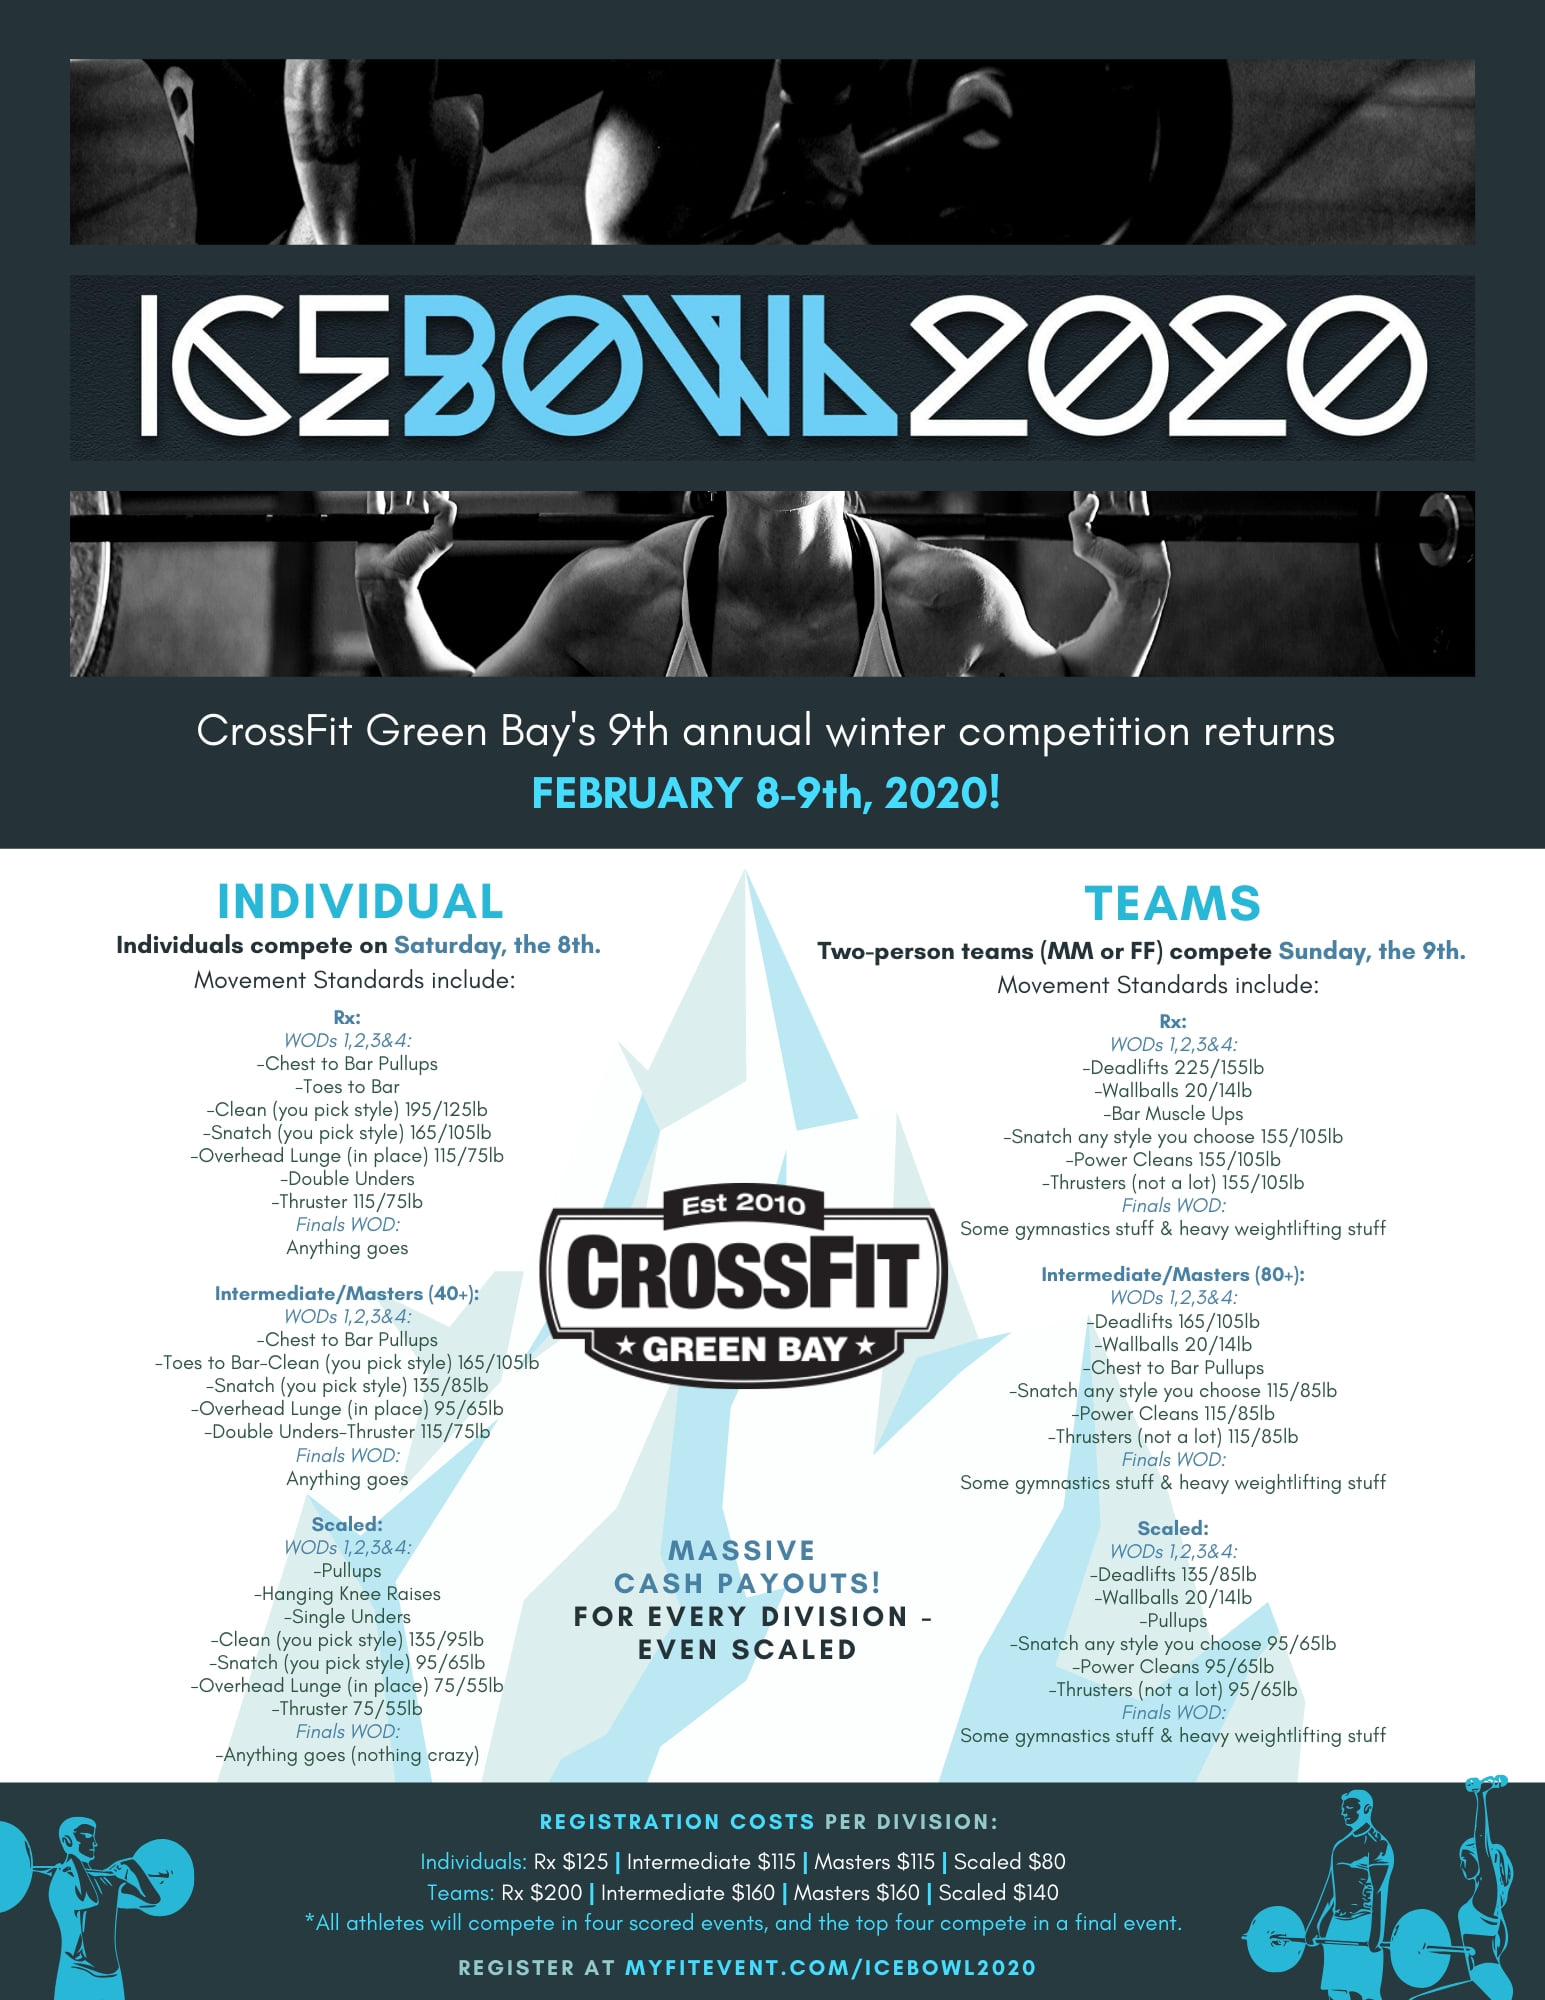 CrossFit Green Bay